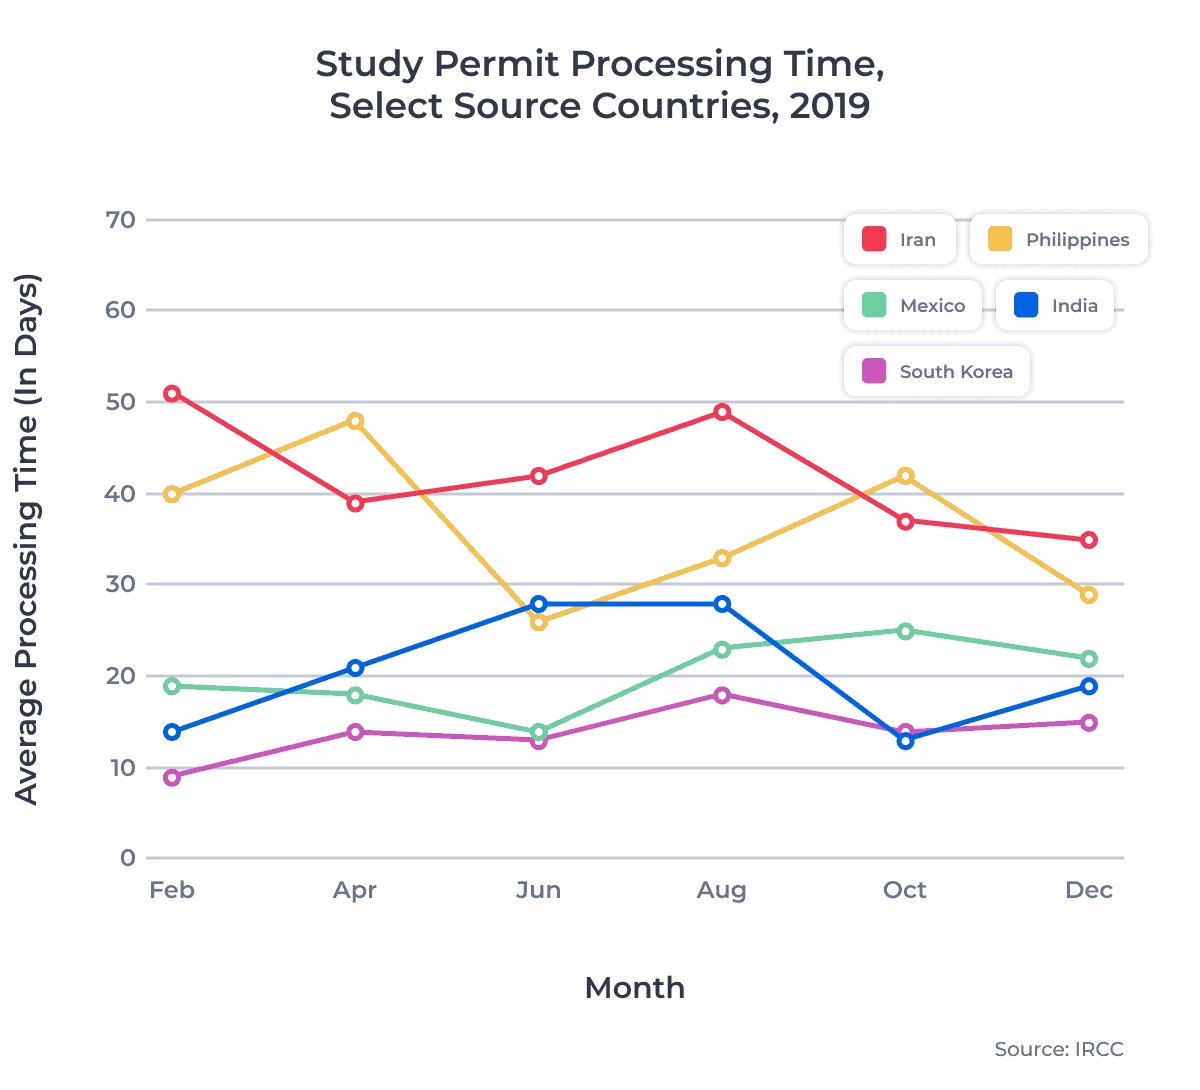 Study Permit Processing Time, Select Source Countries, 2019